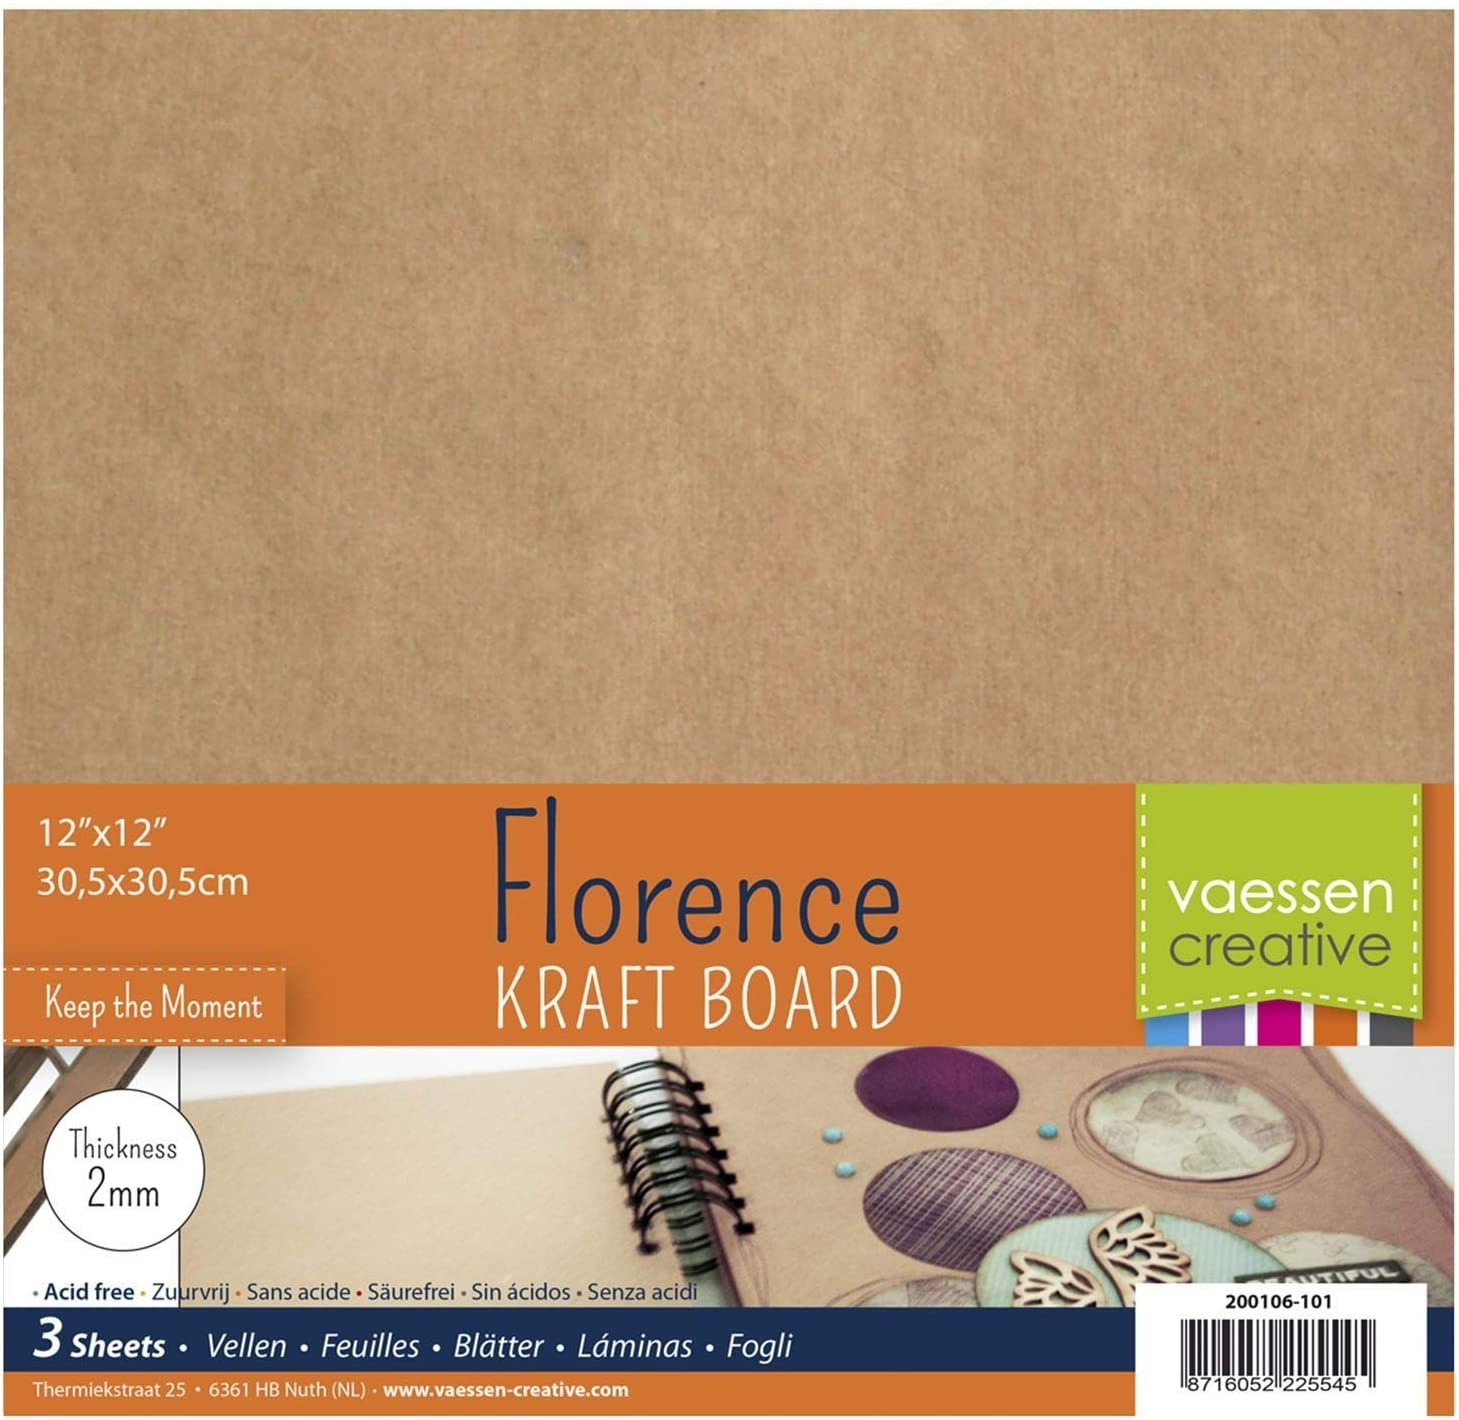 Wedding D/écor and More Kraft Brown 12 x 12 inches Set of 3 Square Sheets for Scrapbook or Journal Covers Photo Albums Vaessen Creative Florence Chipboard Craft 2mm 12 x 12